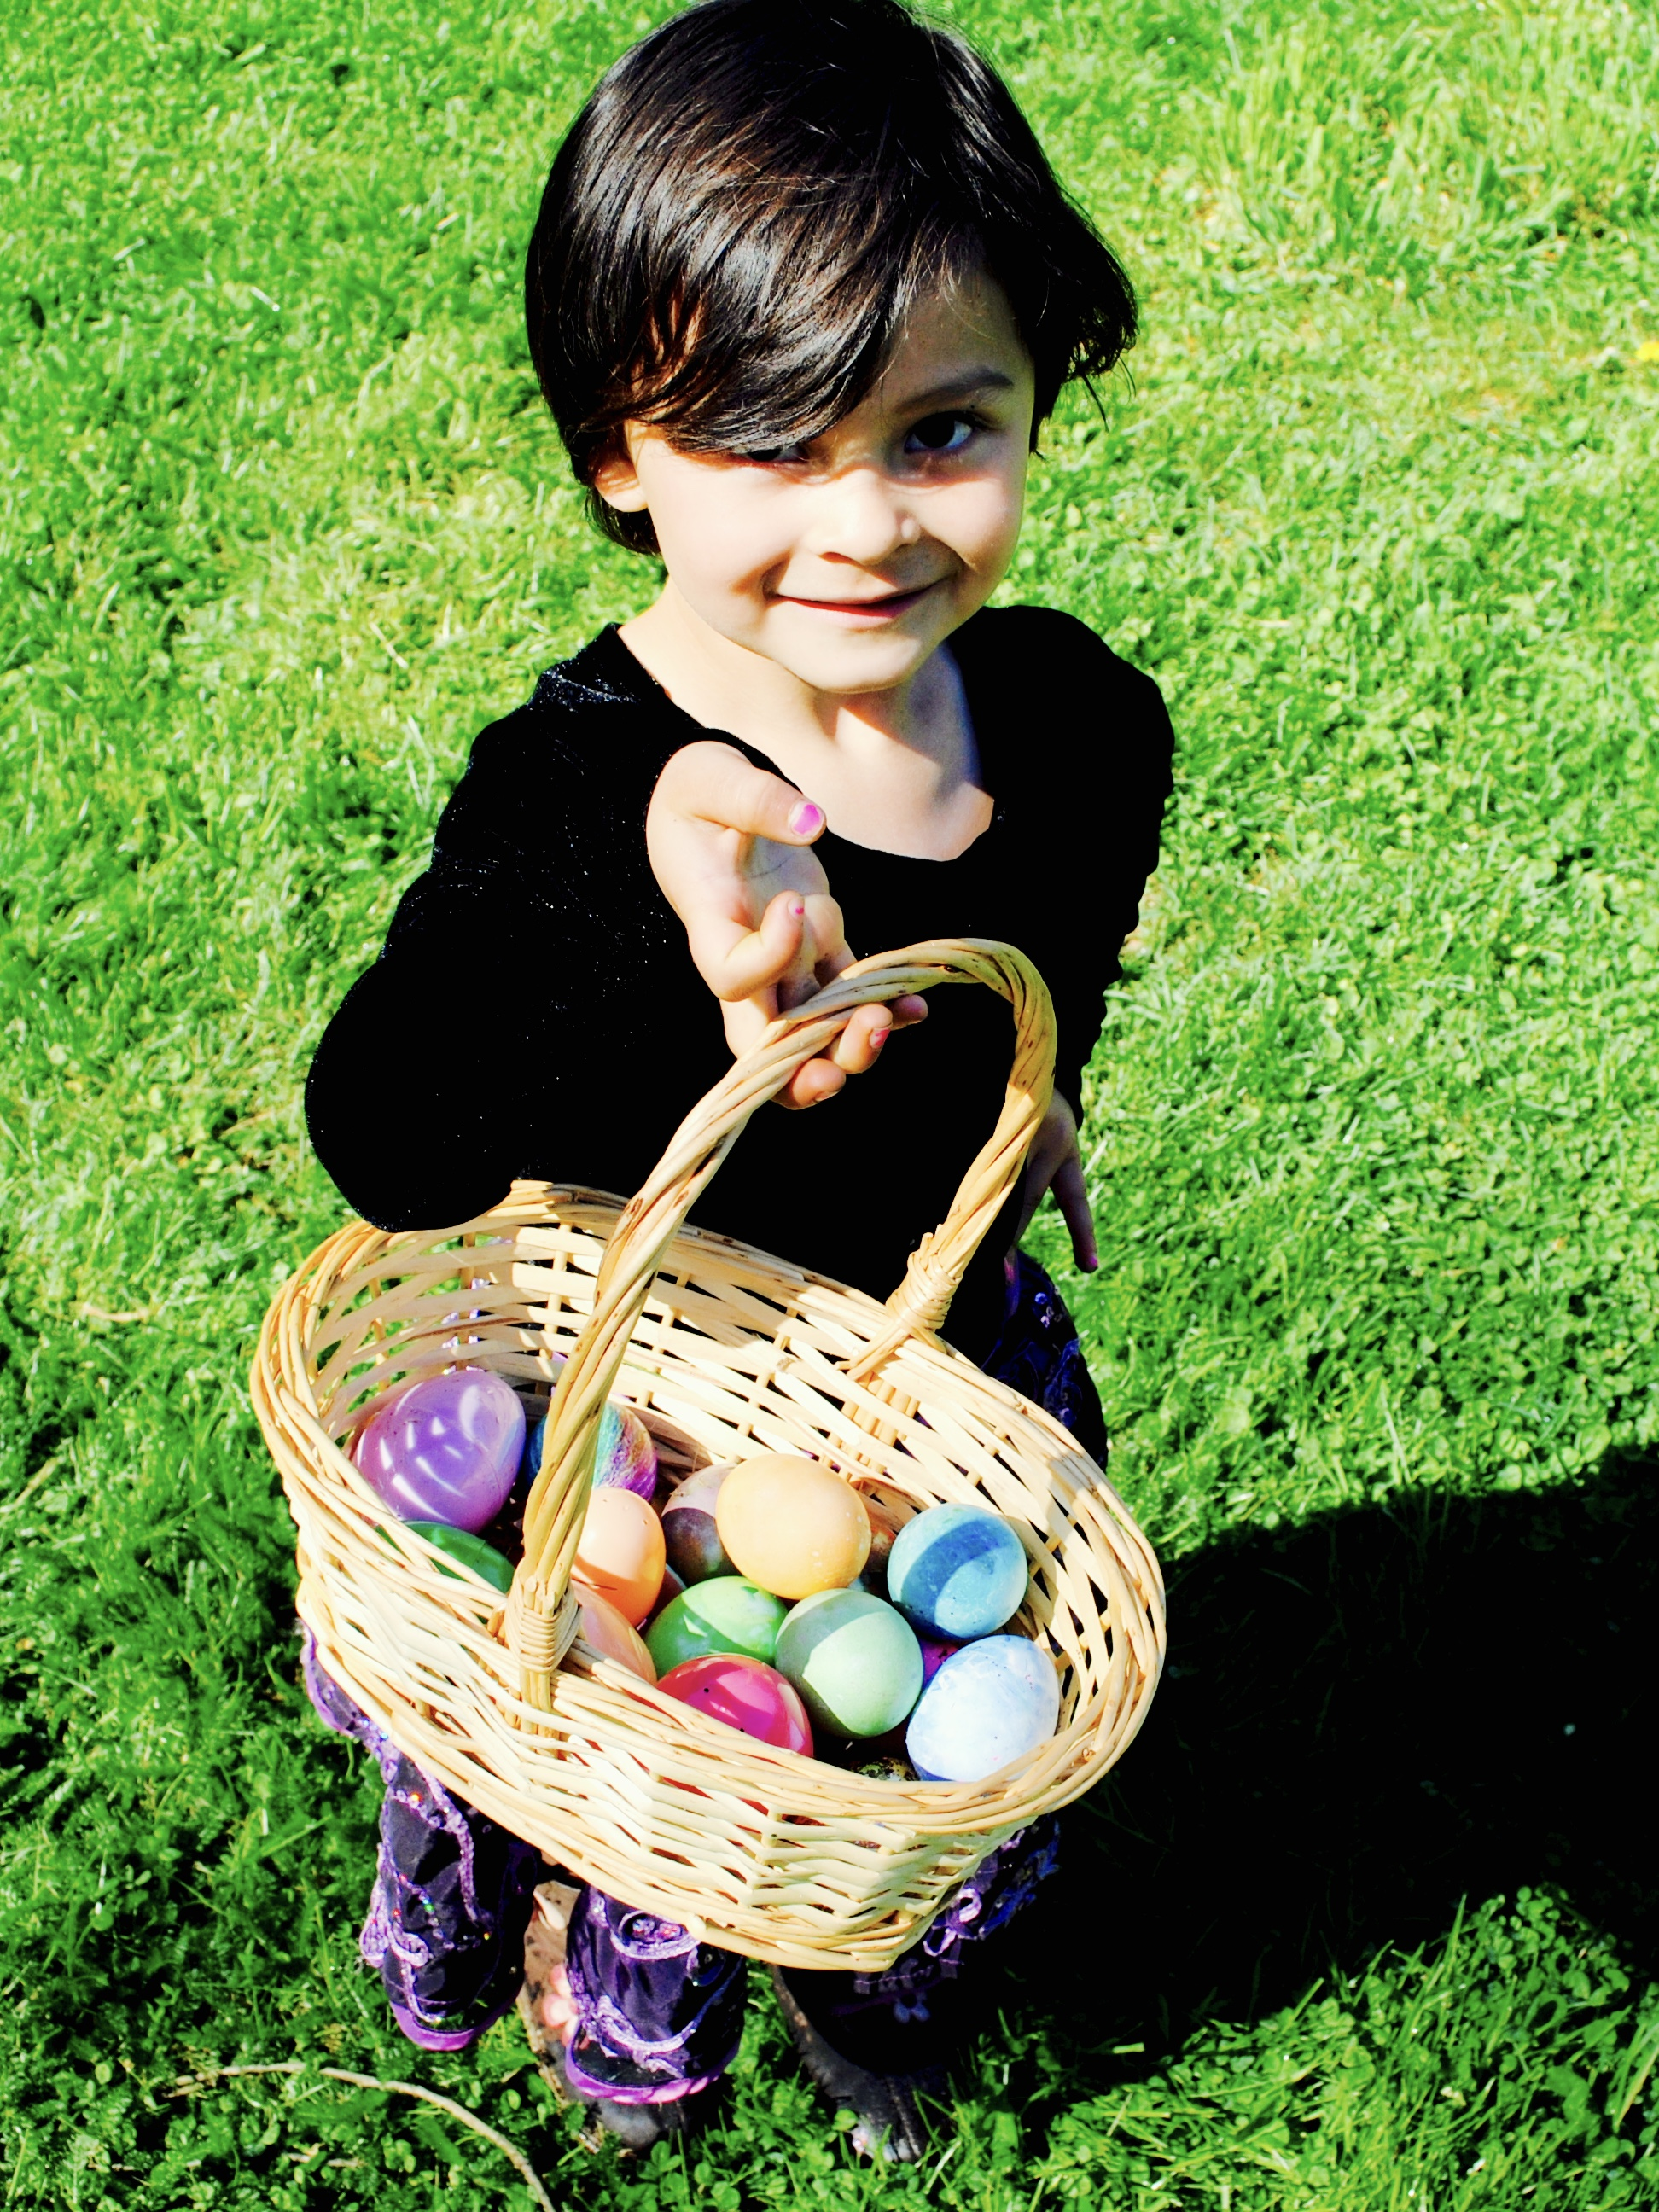 Lola with her basket of goodies, some filled with chocolates, some with finger puppets, some with colorful stickers.